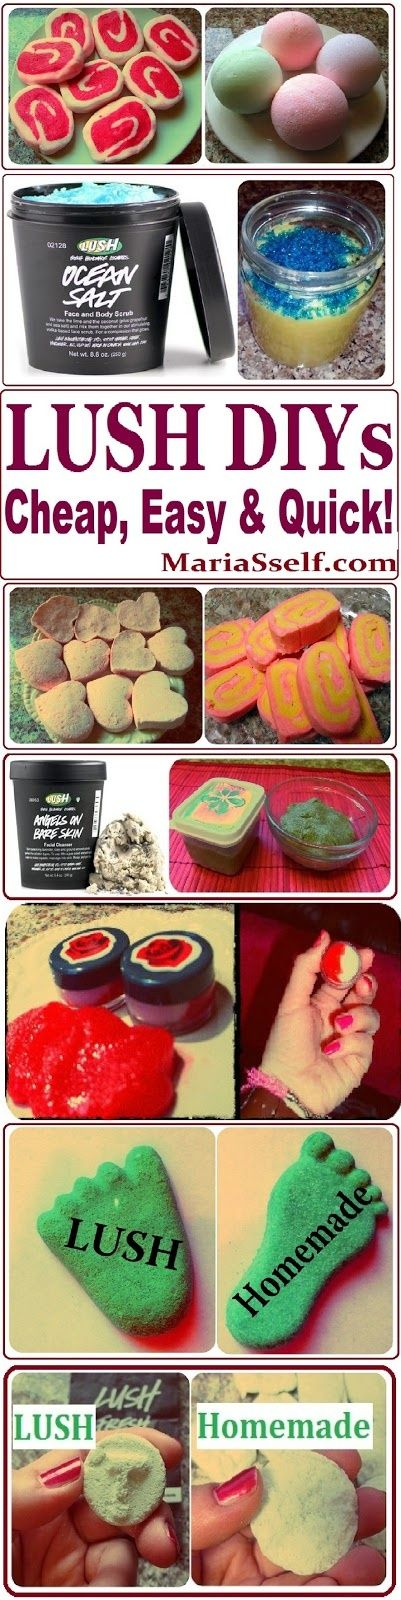 DIY LUSH Product Recipes, How to Make them CHEAP, EASY & QUICK - your-craft.co